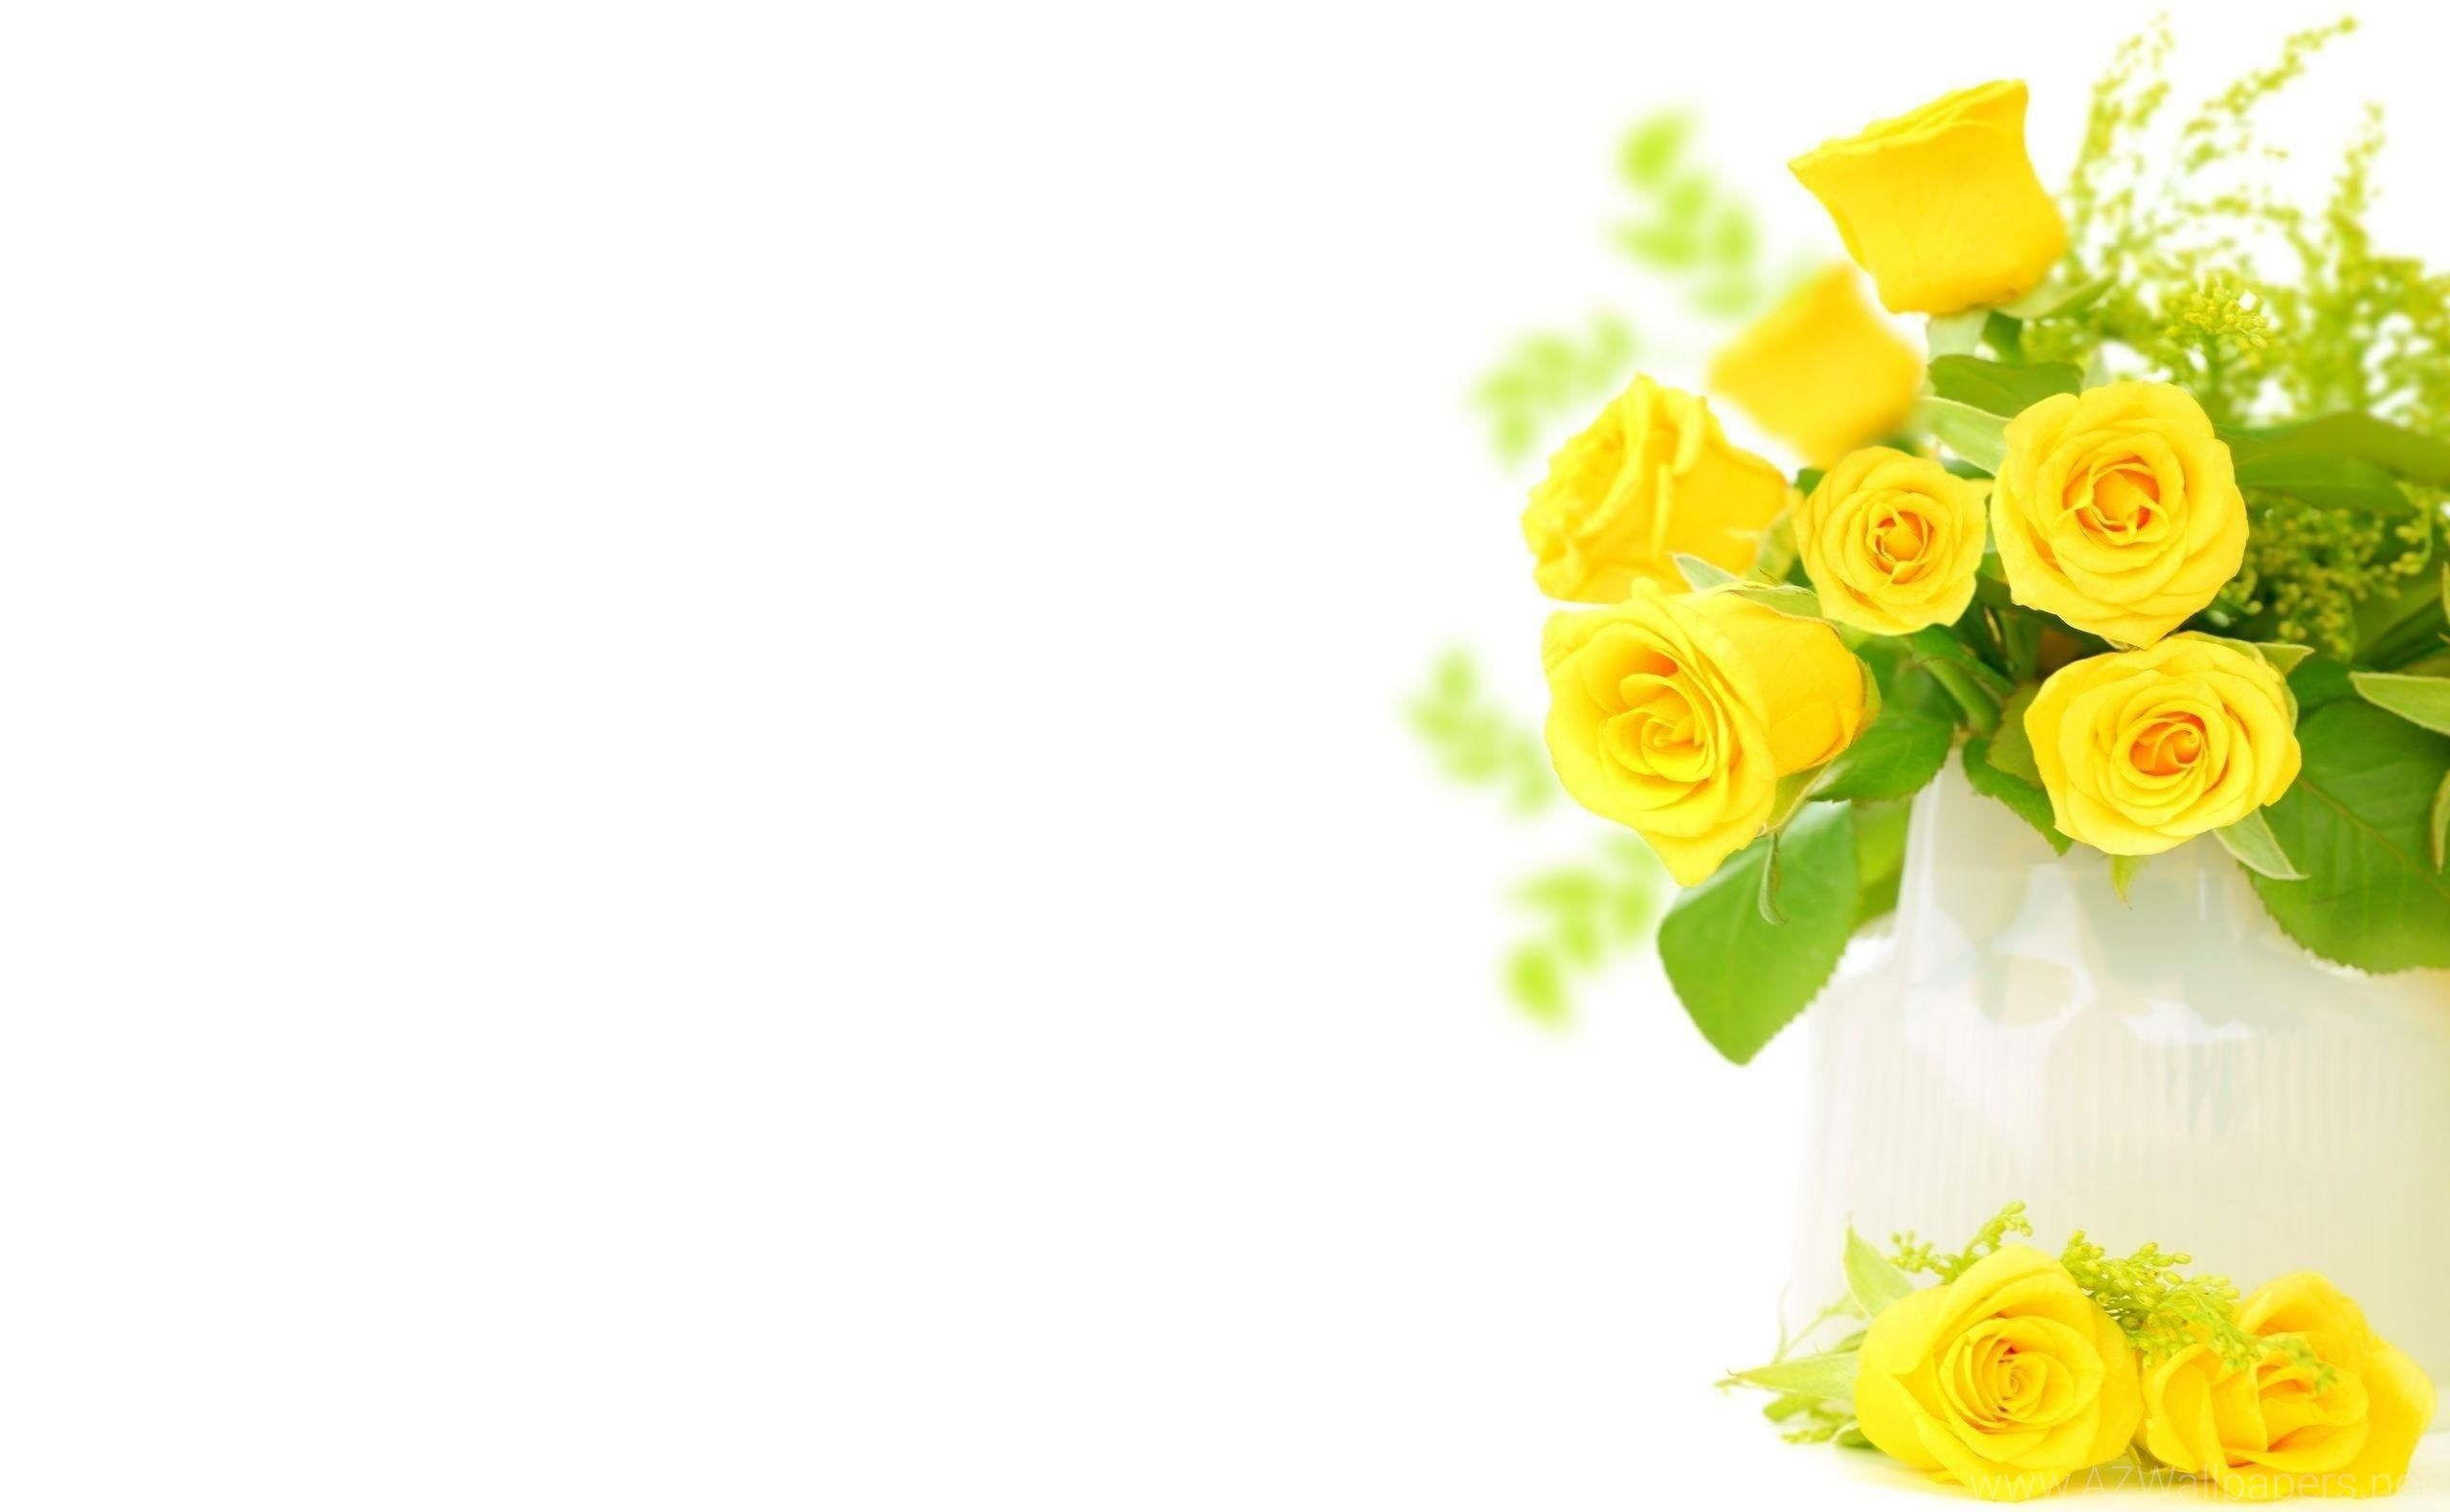 yellow roses background wallpaper | hd wallpapers | pinterest | hd